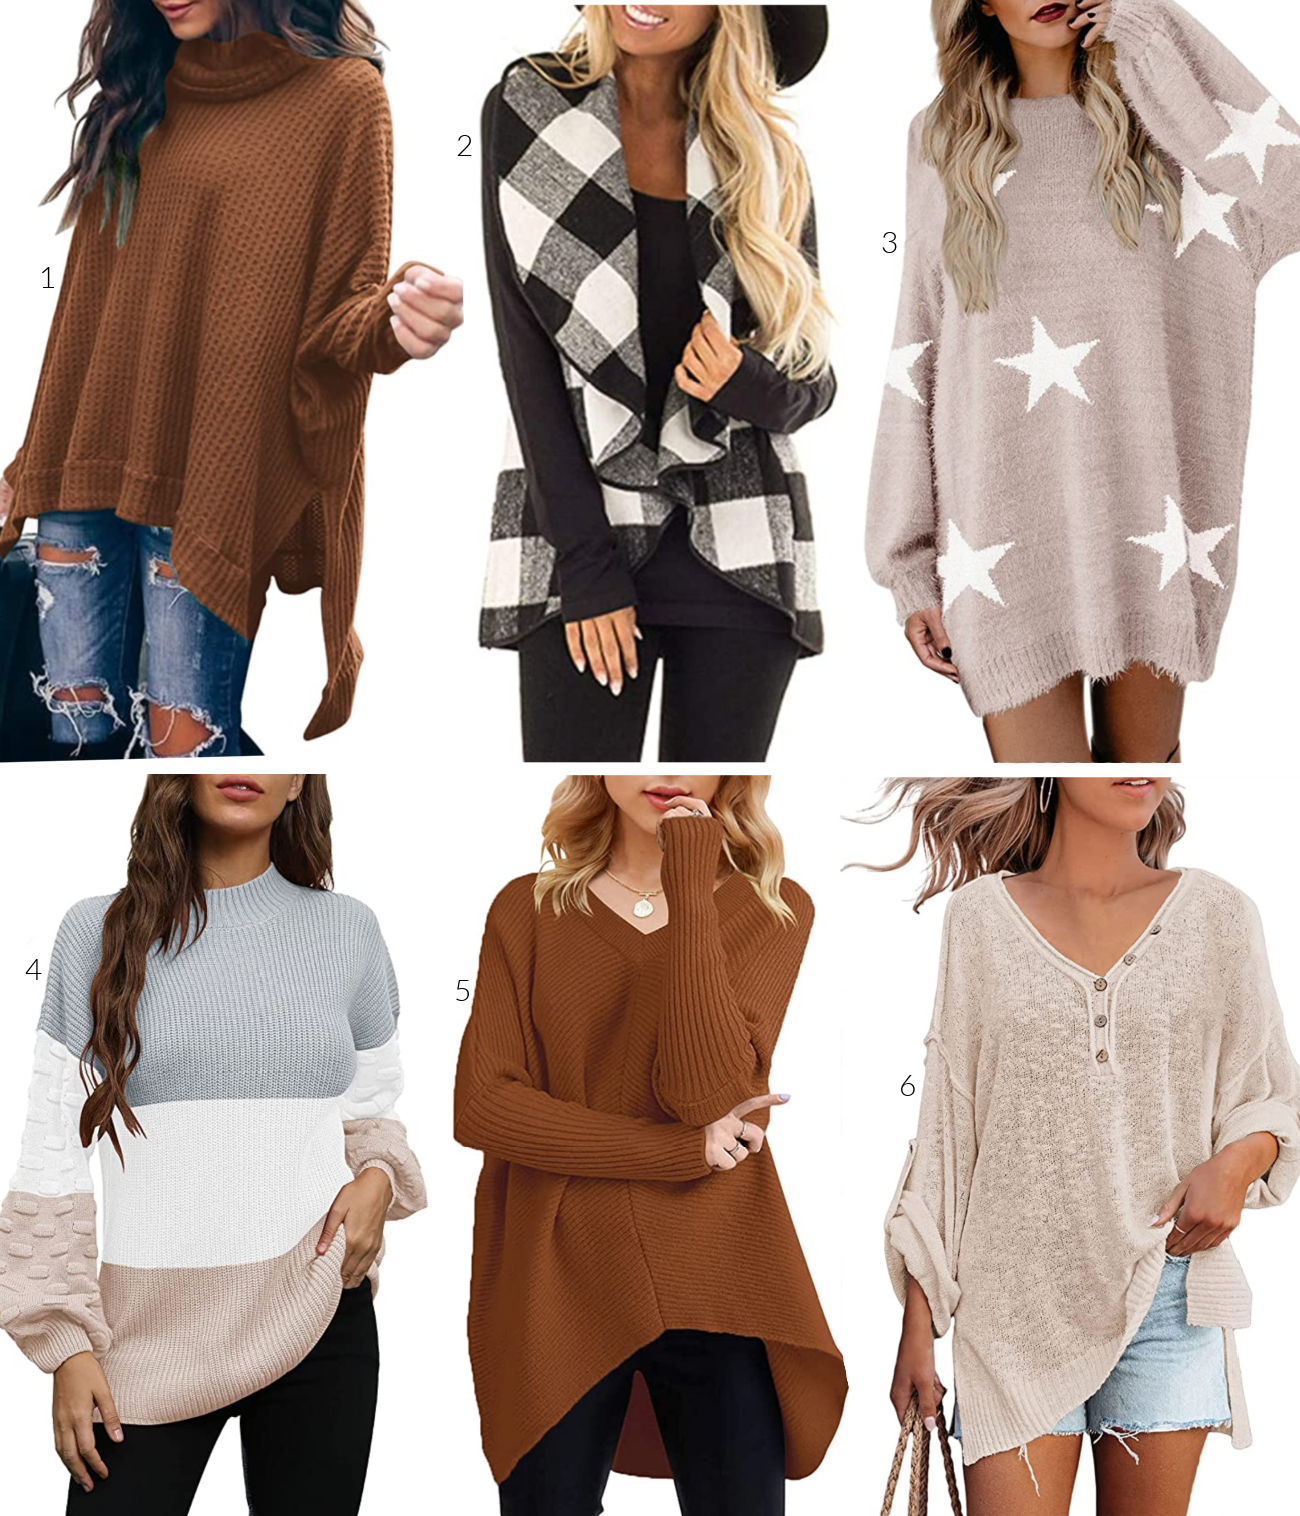 Flattering tops for girls with curves, tops for curvy women, tops that make feel confident, t-shirts to wear with leggings, how to dress up leggings, how to wear leggings to work